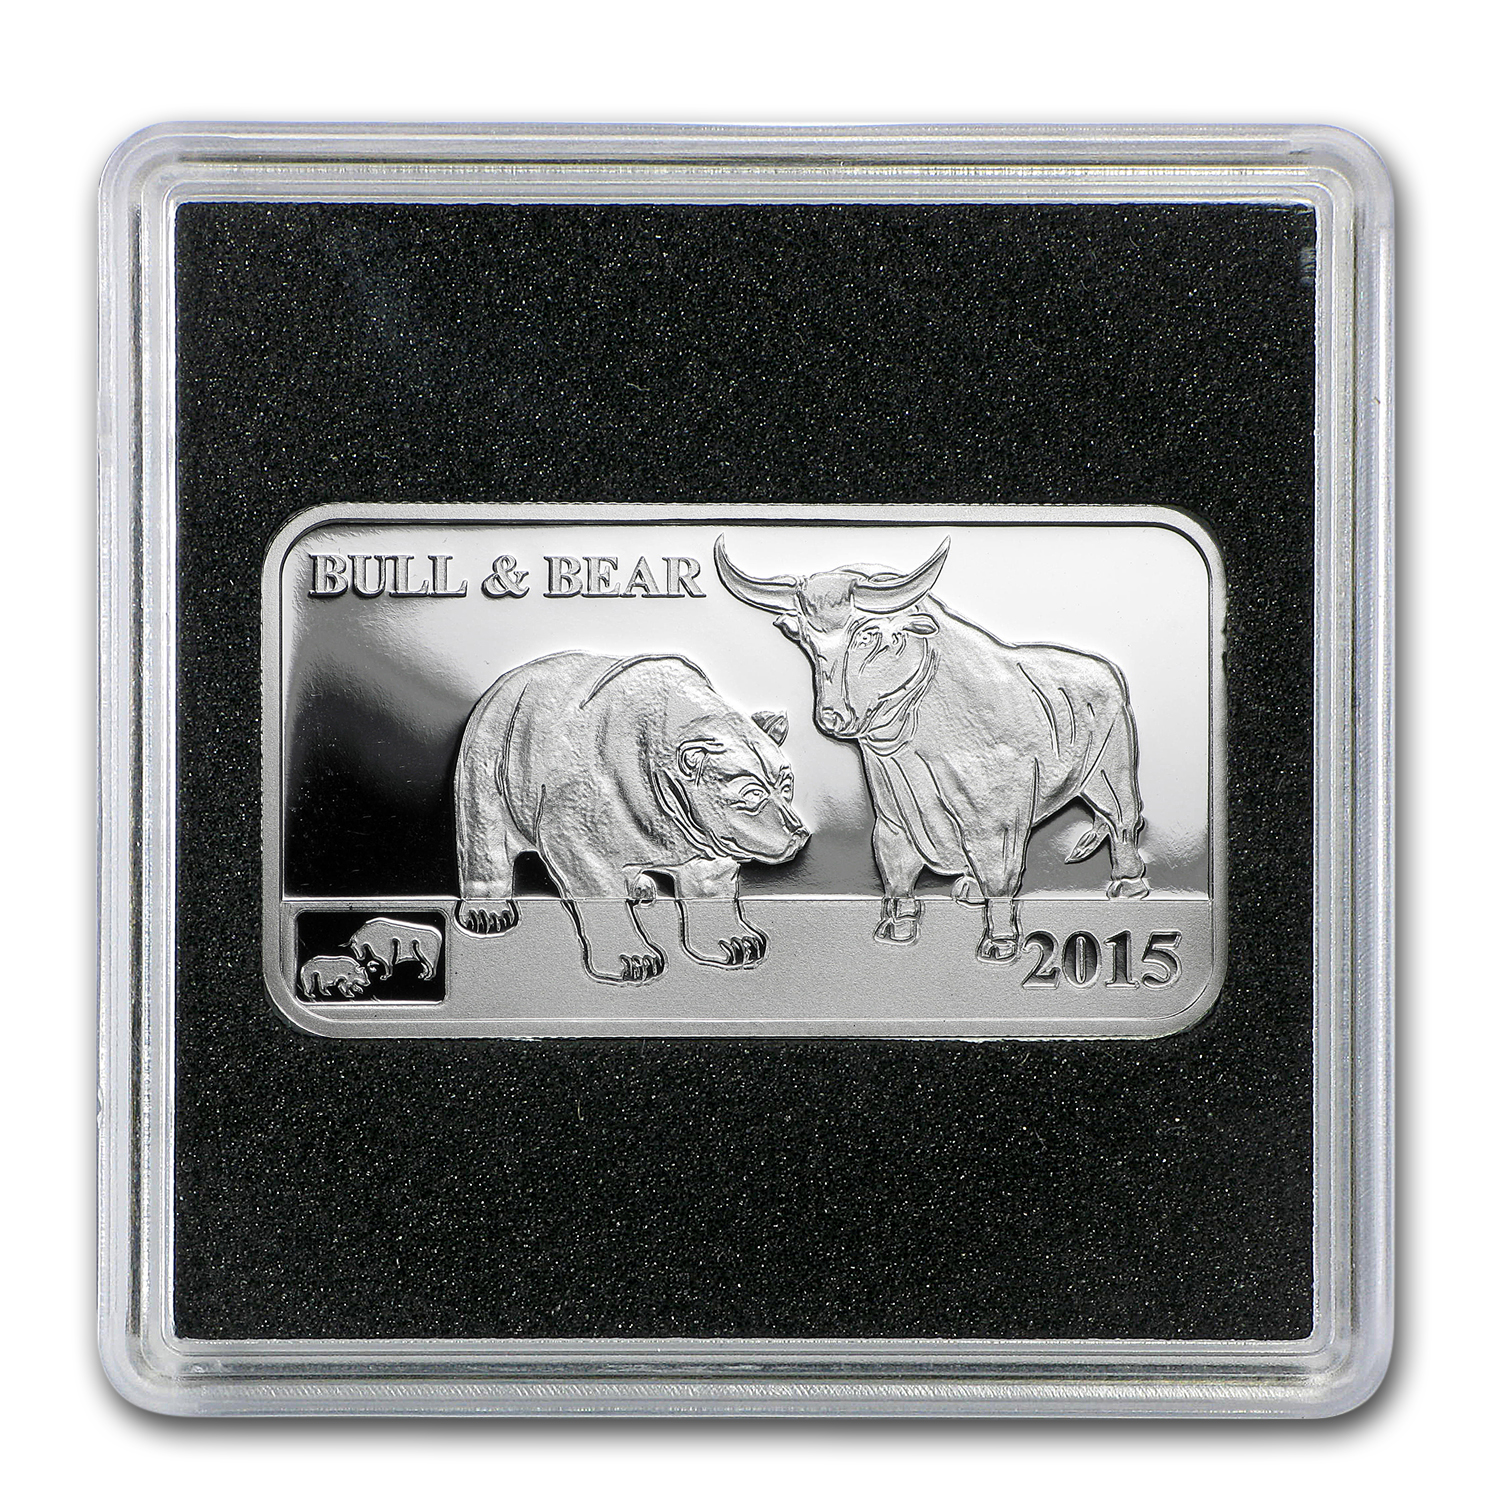 2015 Cook Islands 1/2 oz Silver Global Trade Bull & Bear